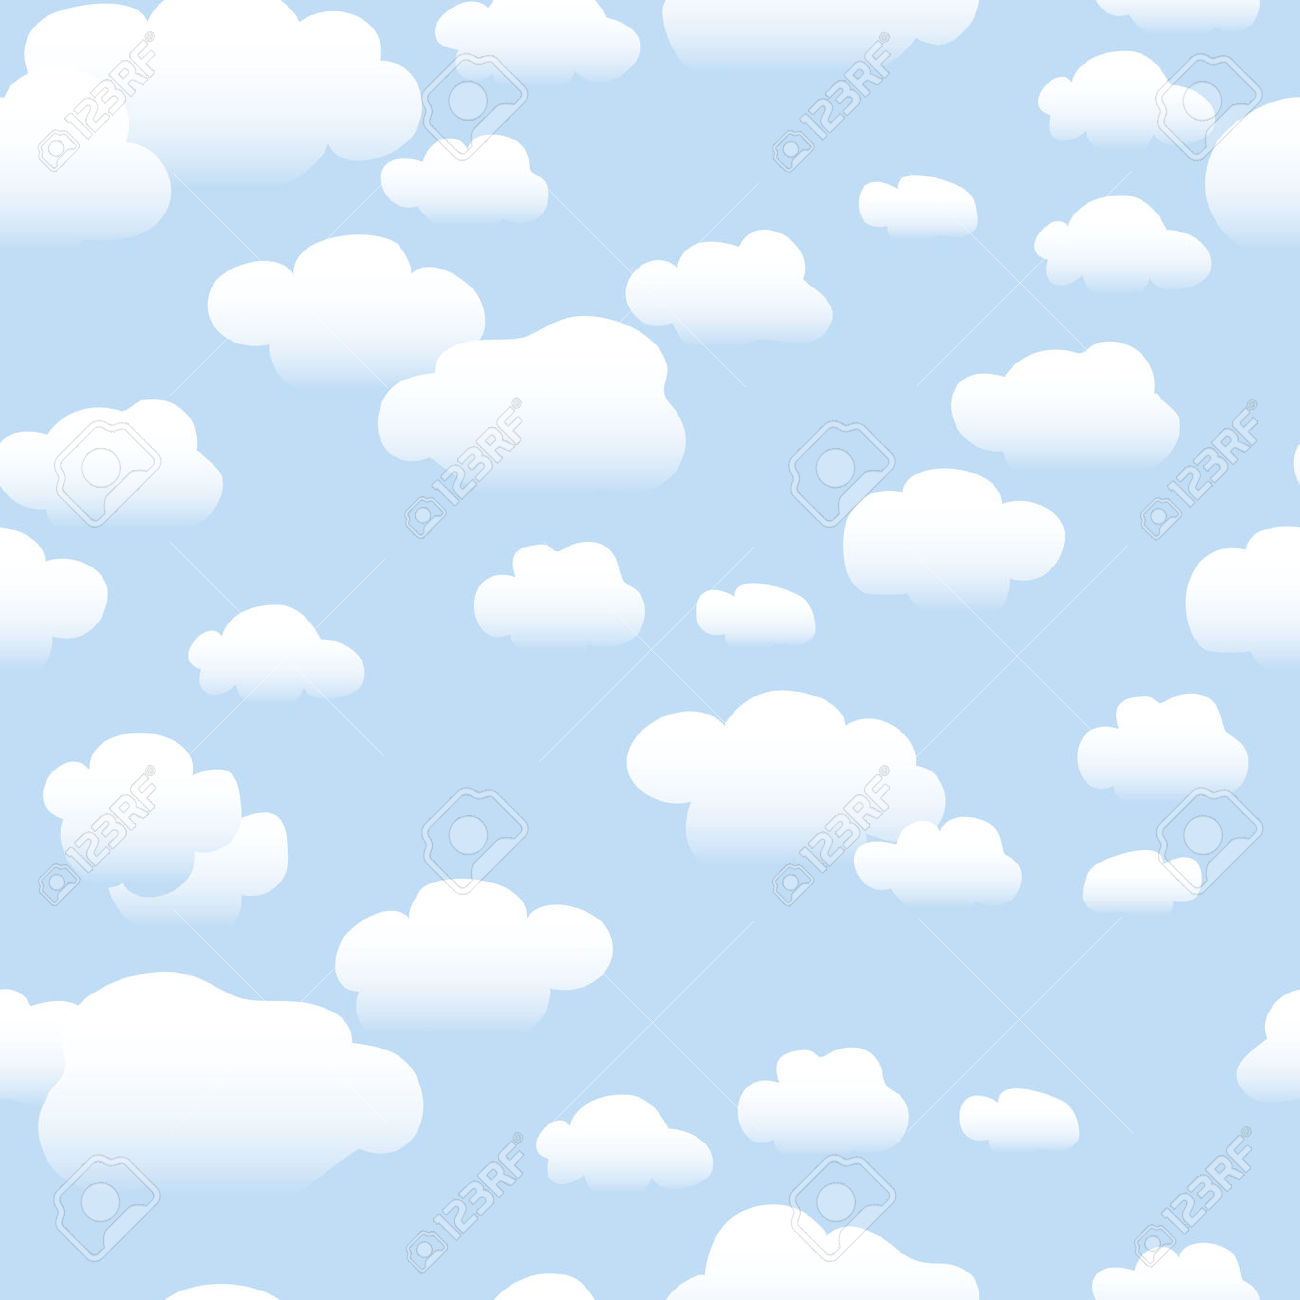 Clouds clipart blue background Background Clipart (3419) — Clipart